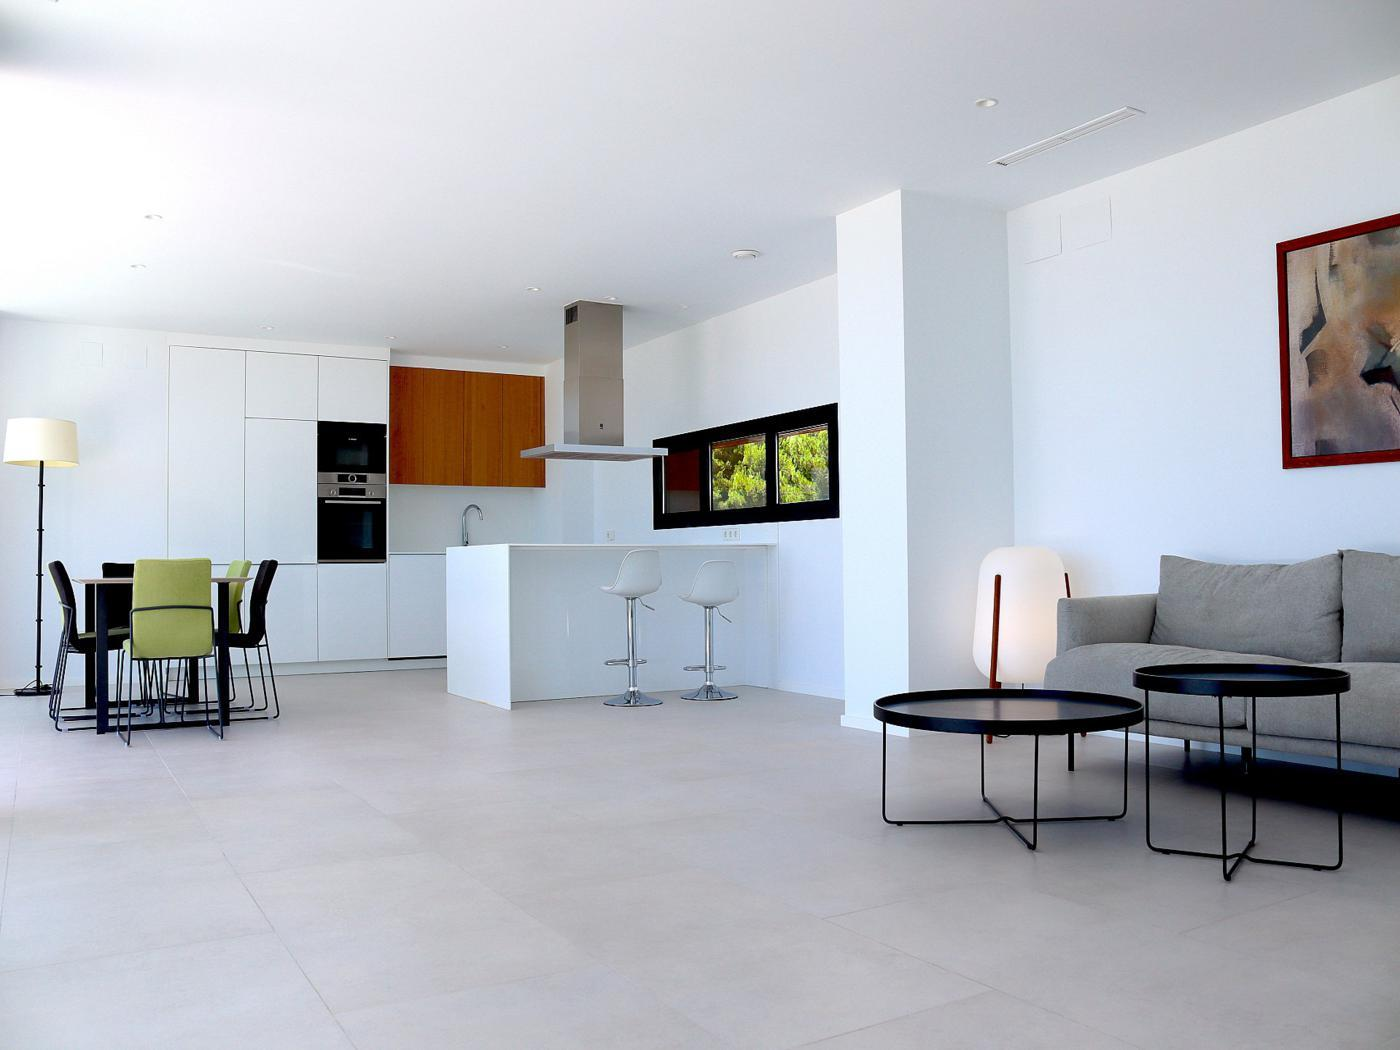 Photogallery - 5 - Exceptional homes in the Costa Blanca. Unparalleled Service. Exceptional properties in the Costa Blanca